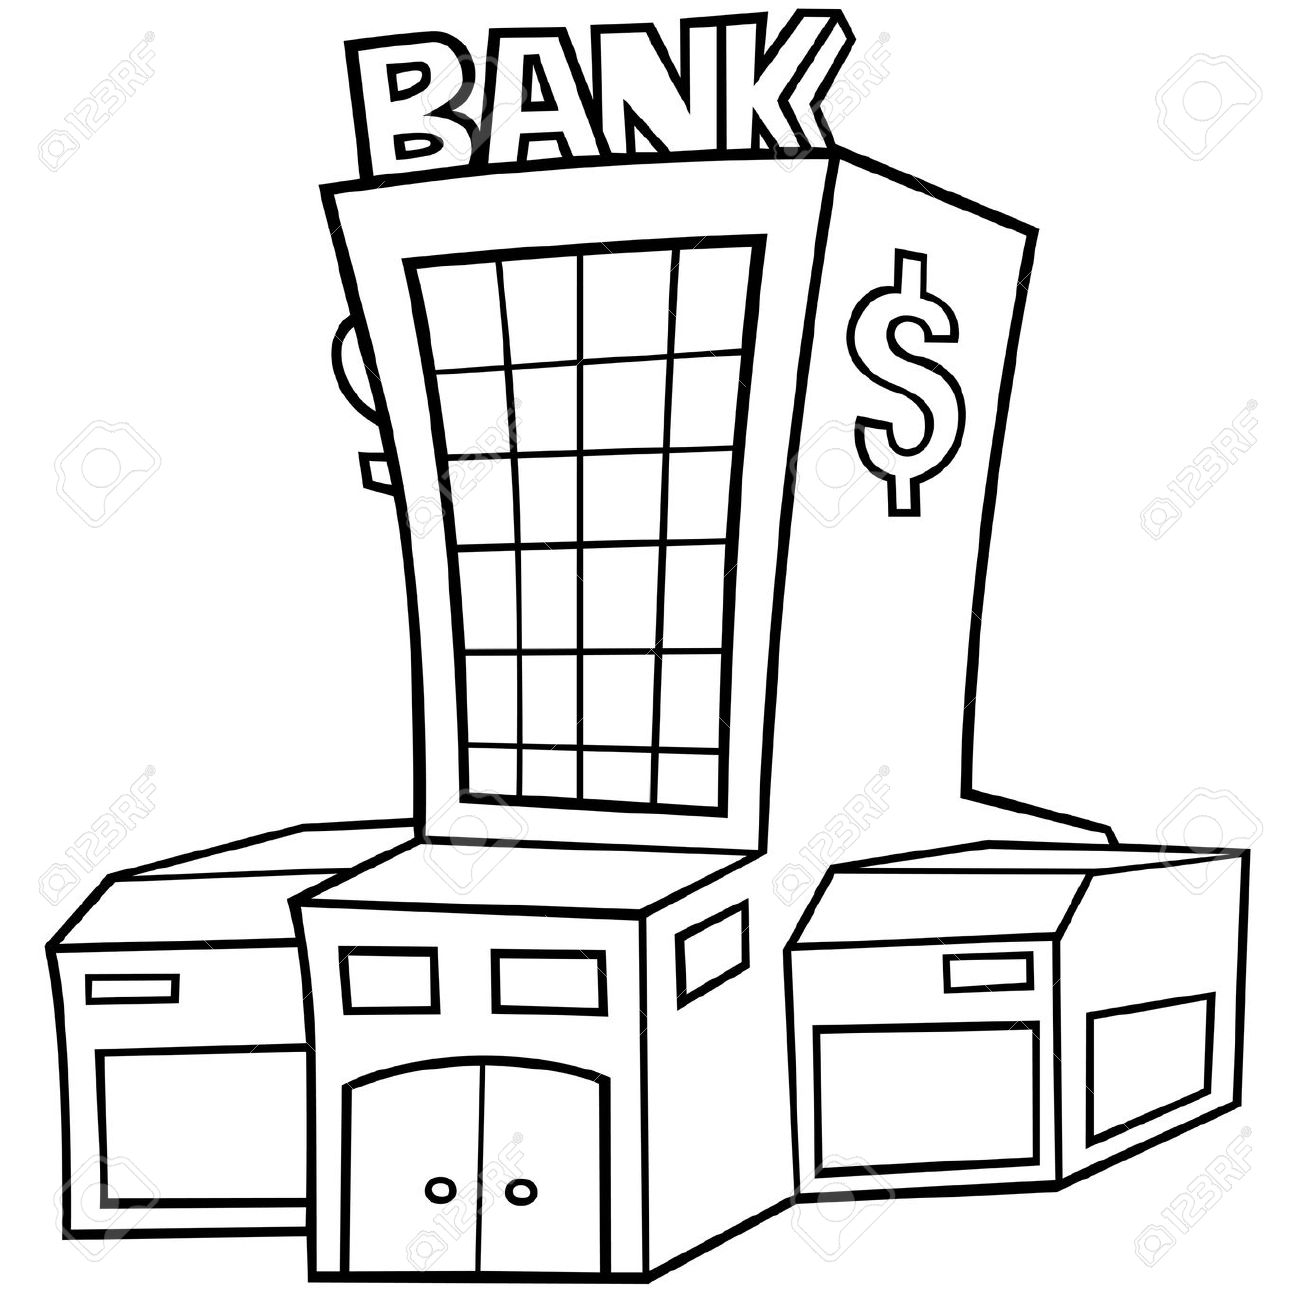 Black and White Bank Clipart